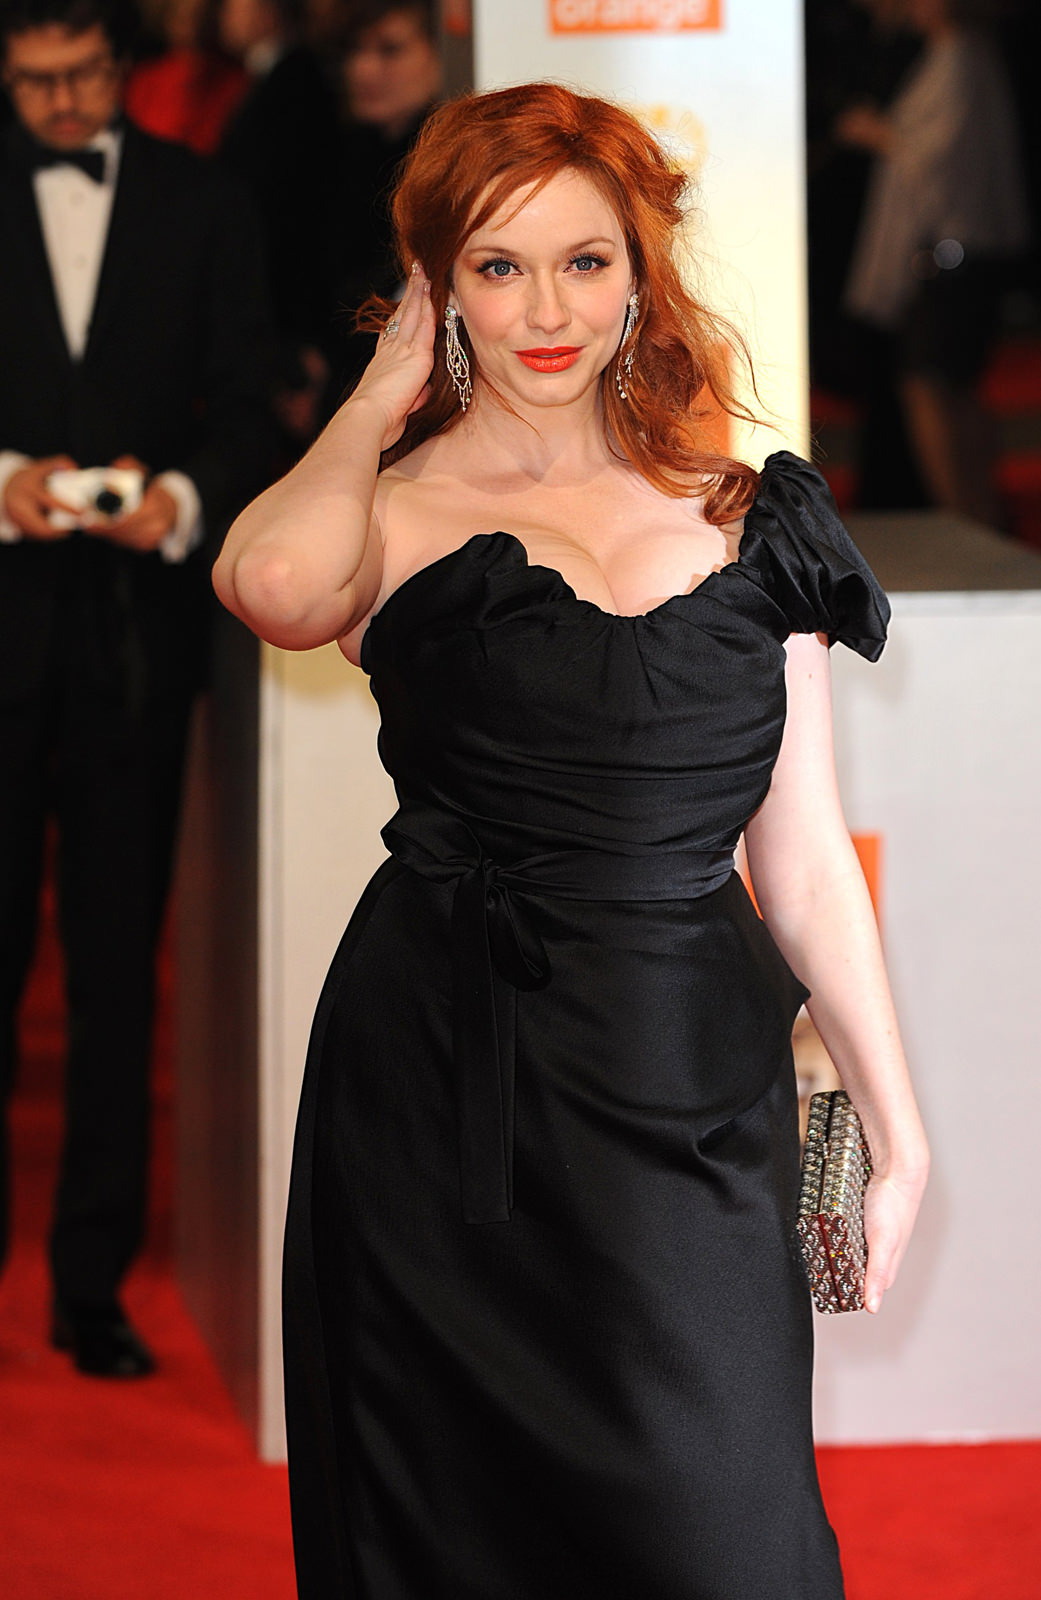 Christina Hendricks Photo Gallery